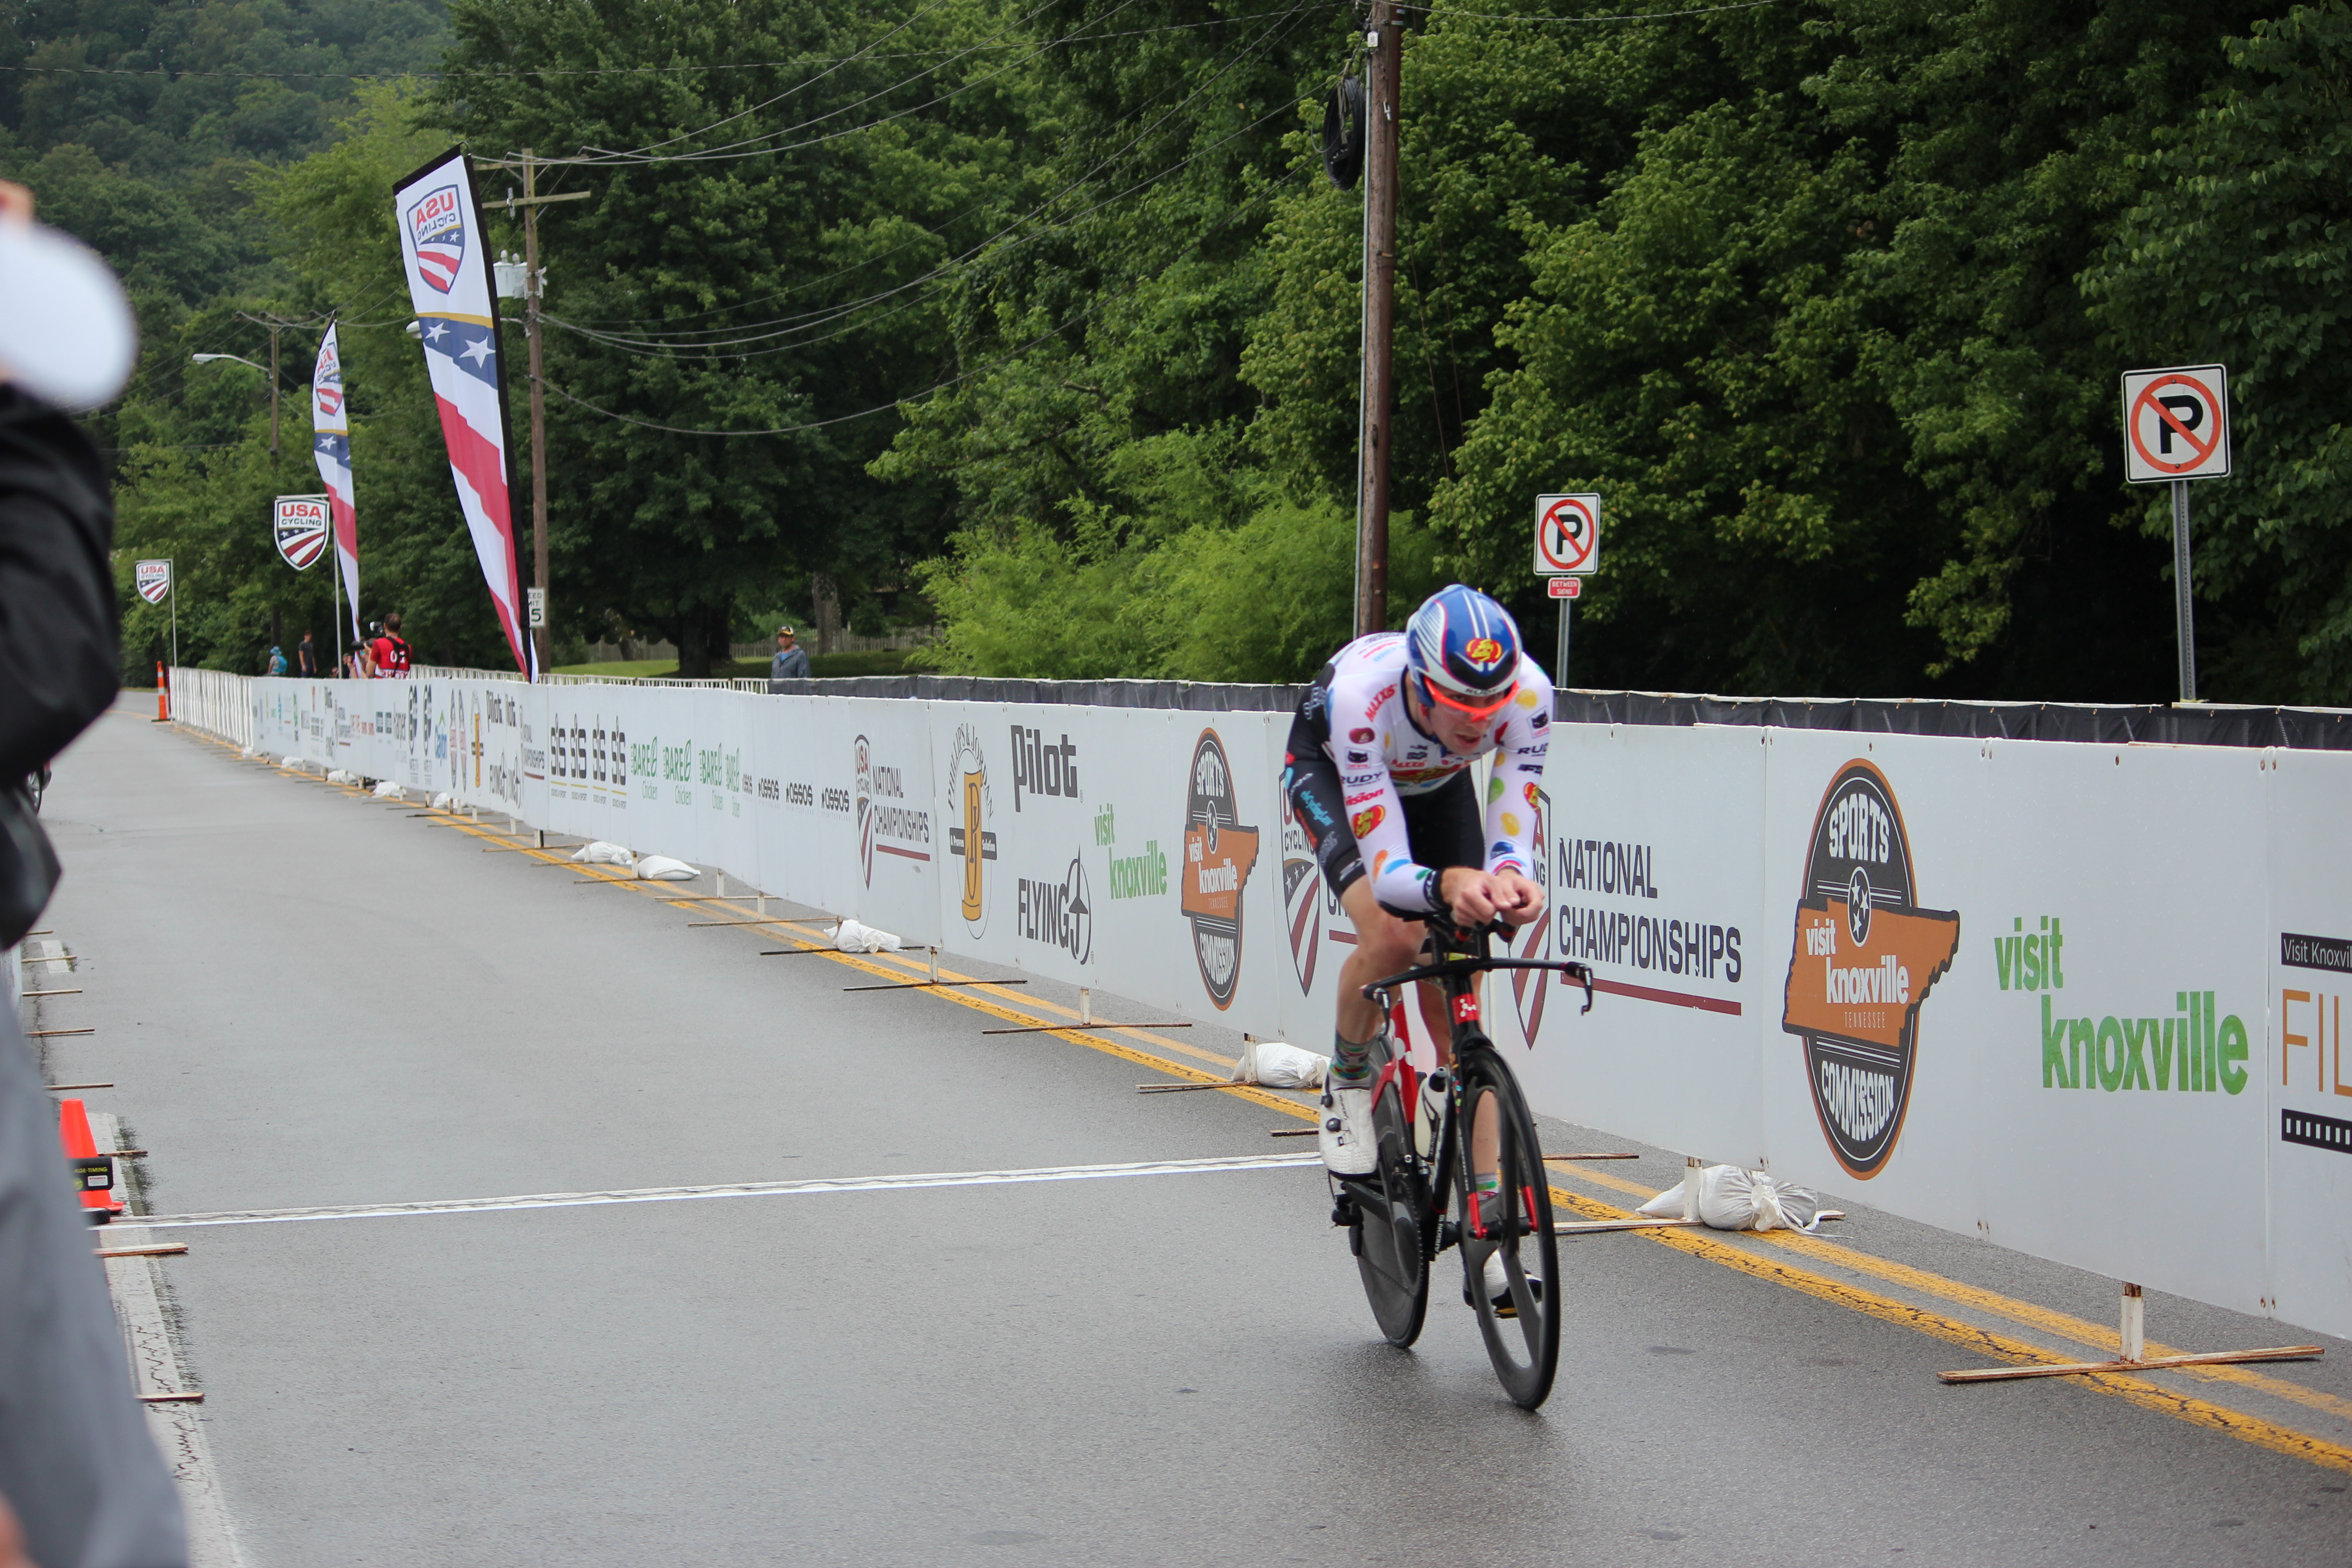 c71acdc0ea9 USA Cycling in Knoxville, TN | June 27-30, 2019